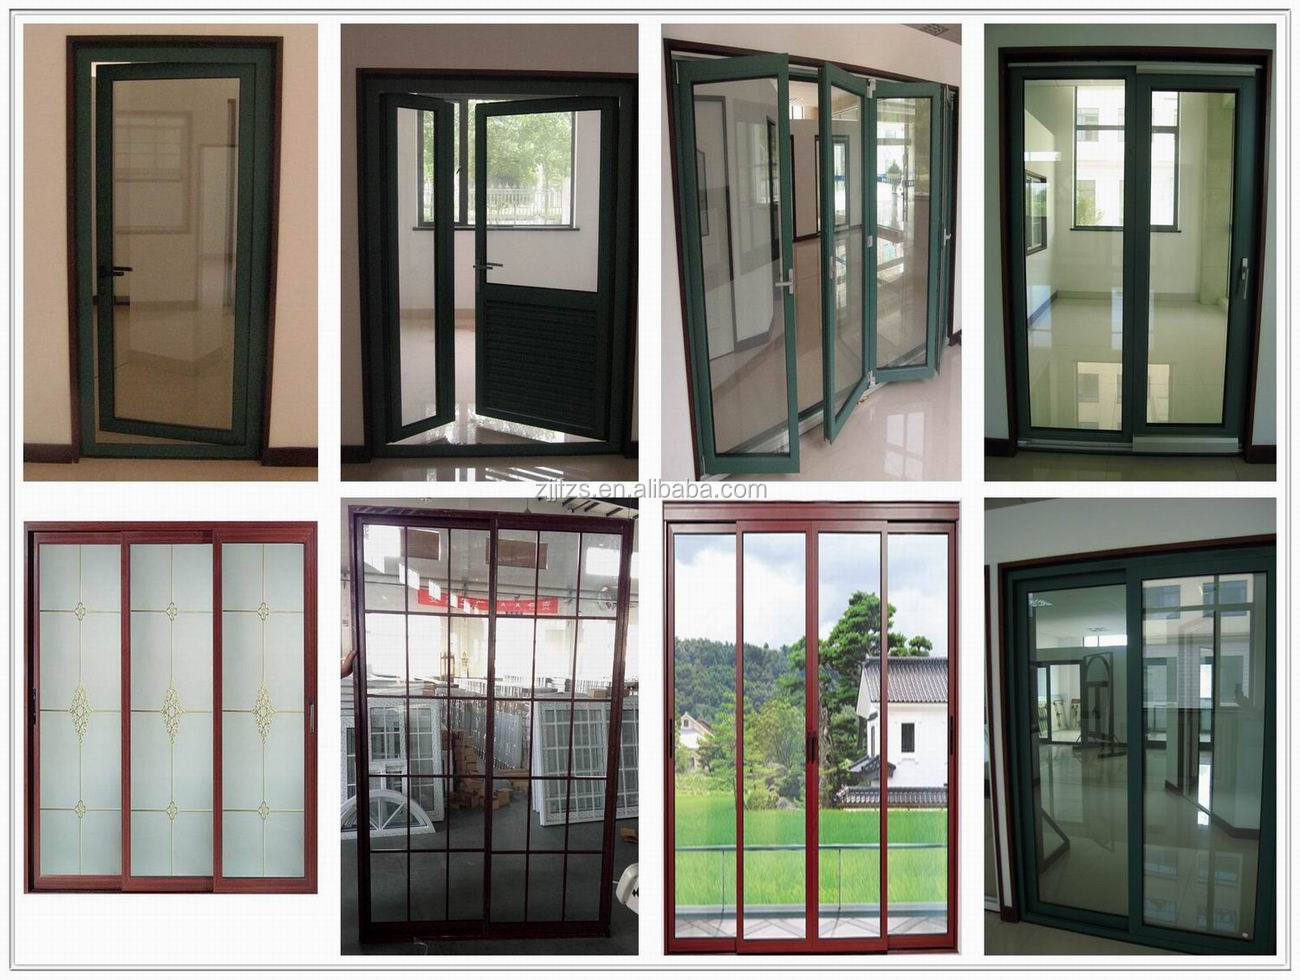 Aluminum Exterior Sliding Doors Made In China Balcony Door Designs For Homes Buy Balcony Door